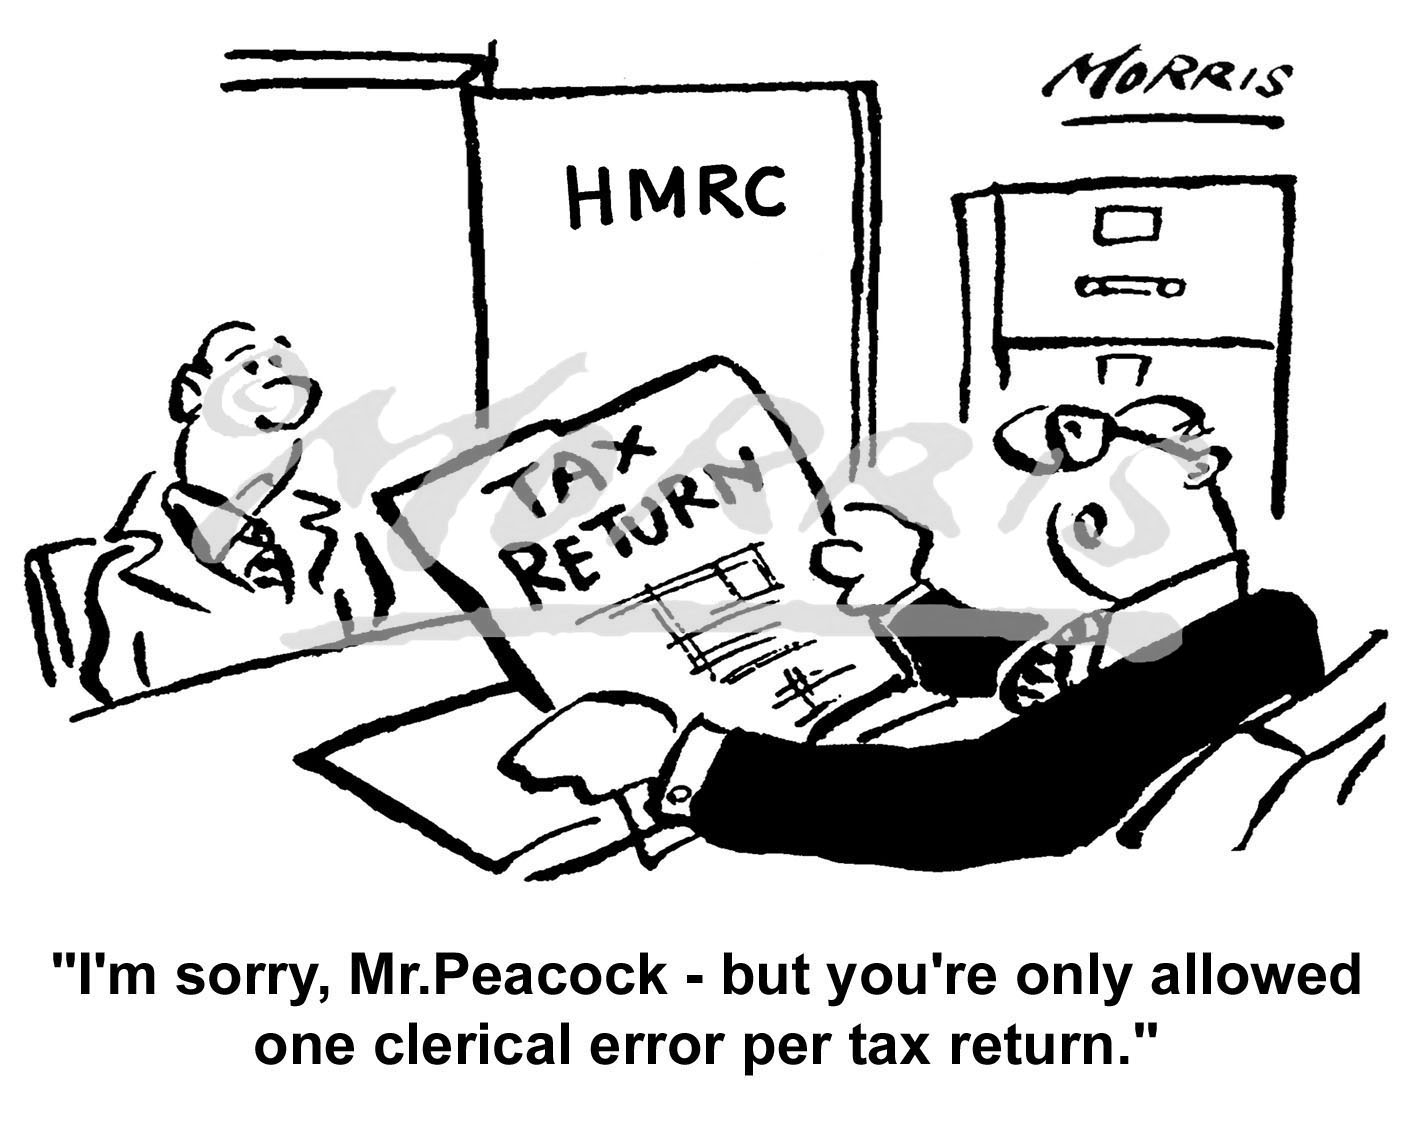 HMRC Tax return cartoon – Ref: 0478bw